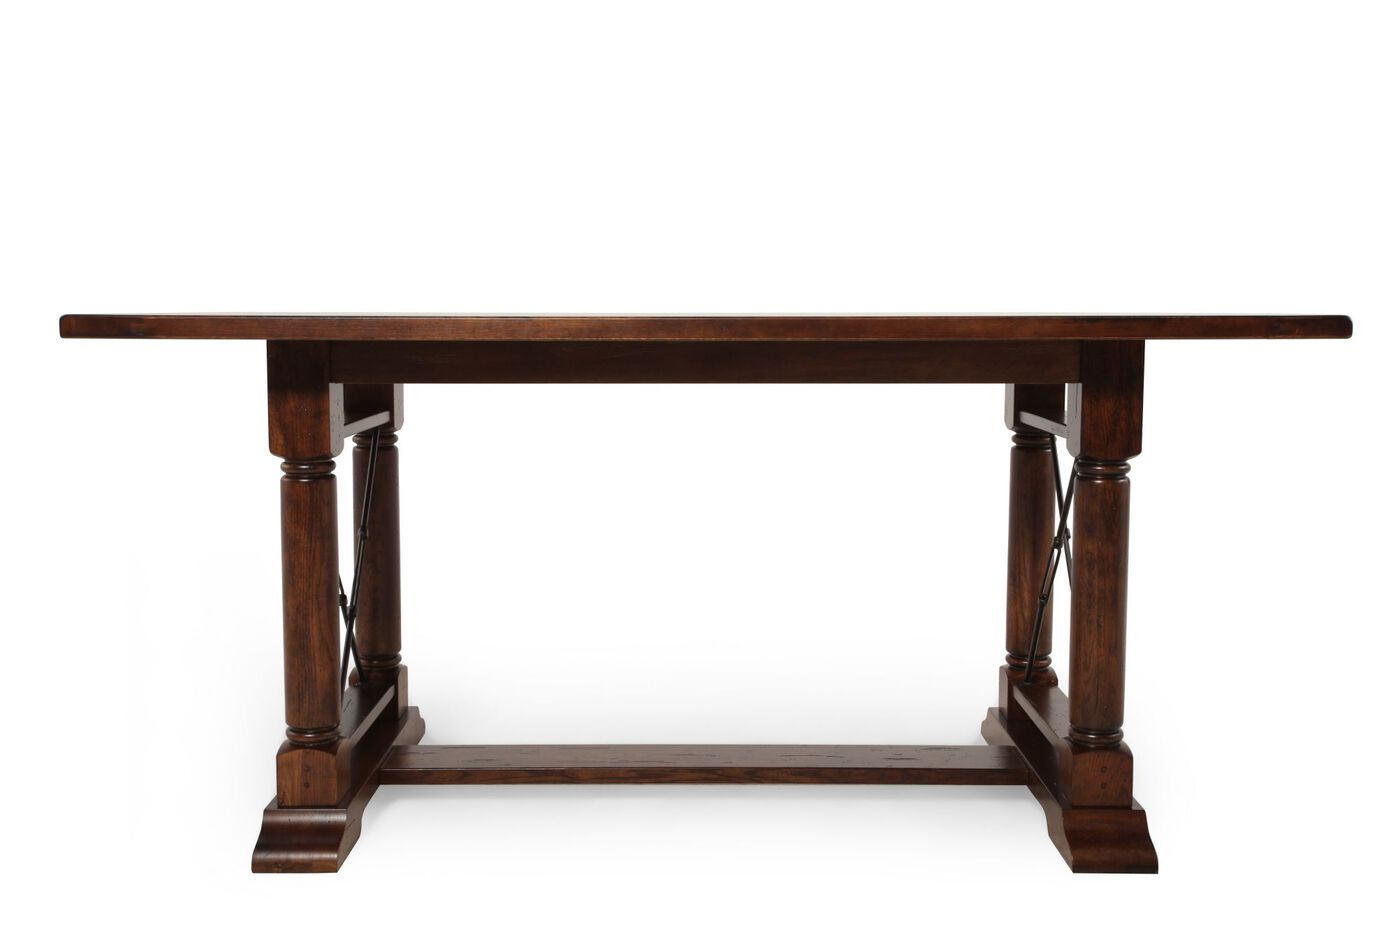 broyhill attic heirlooms rustic oak counter height table | mathis